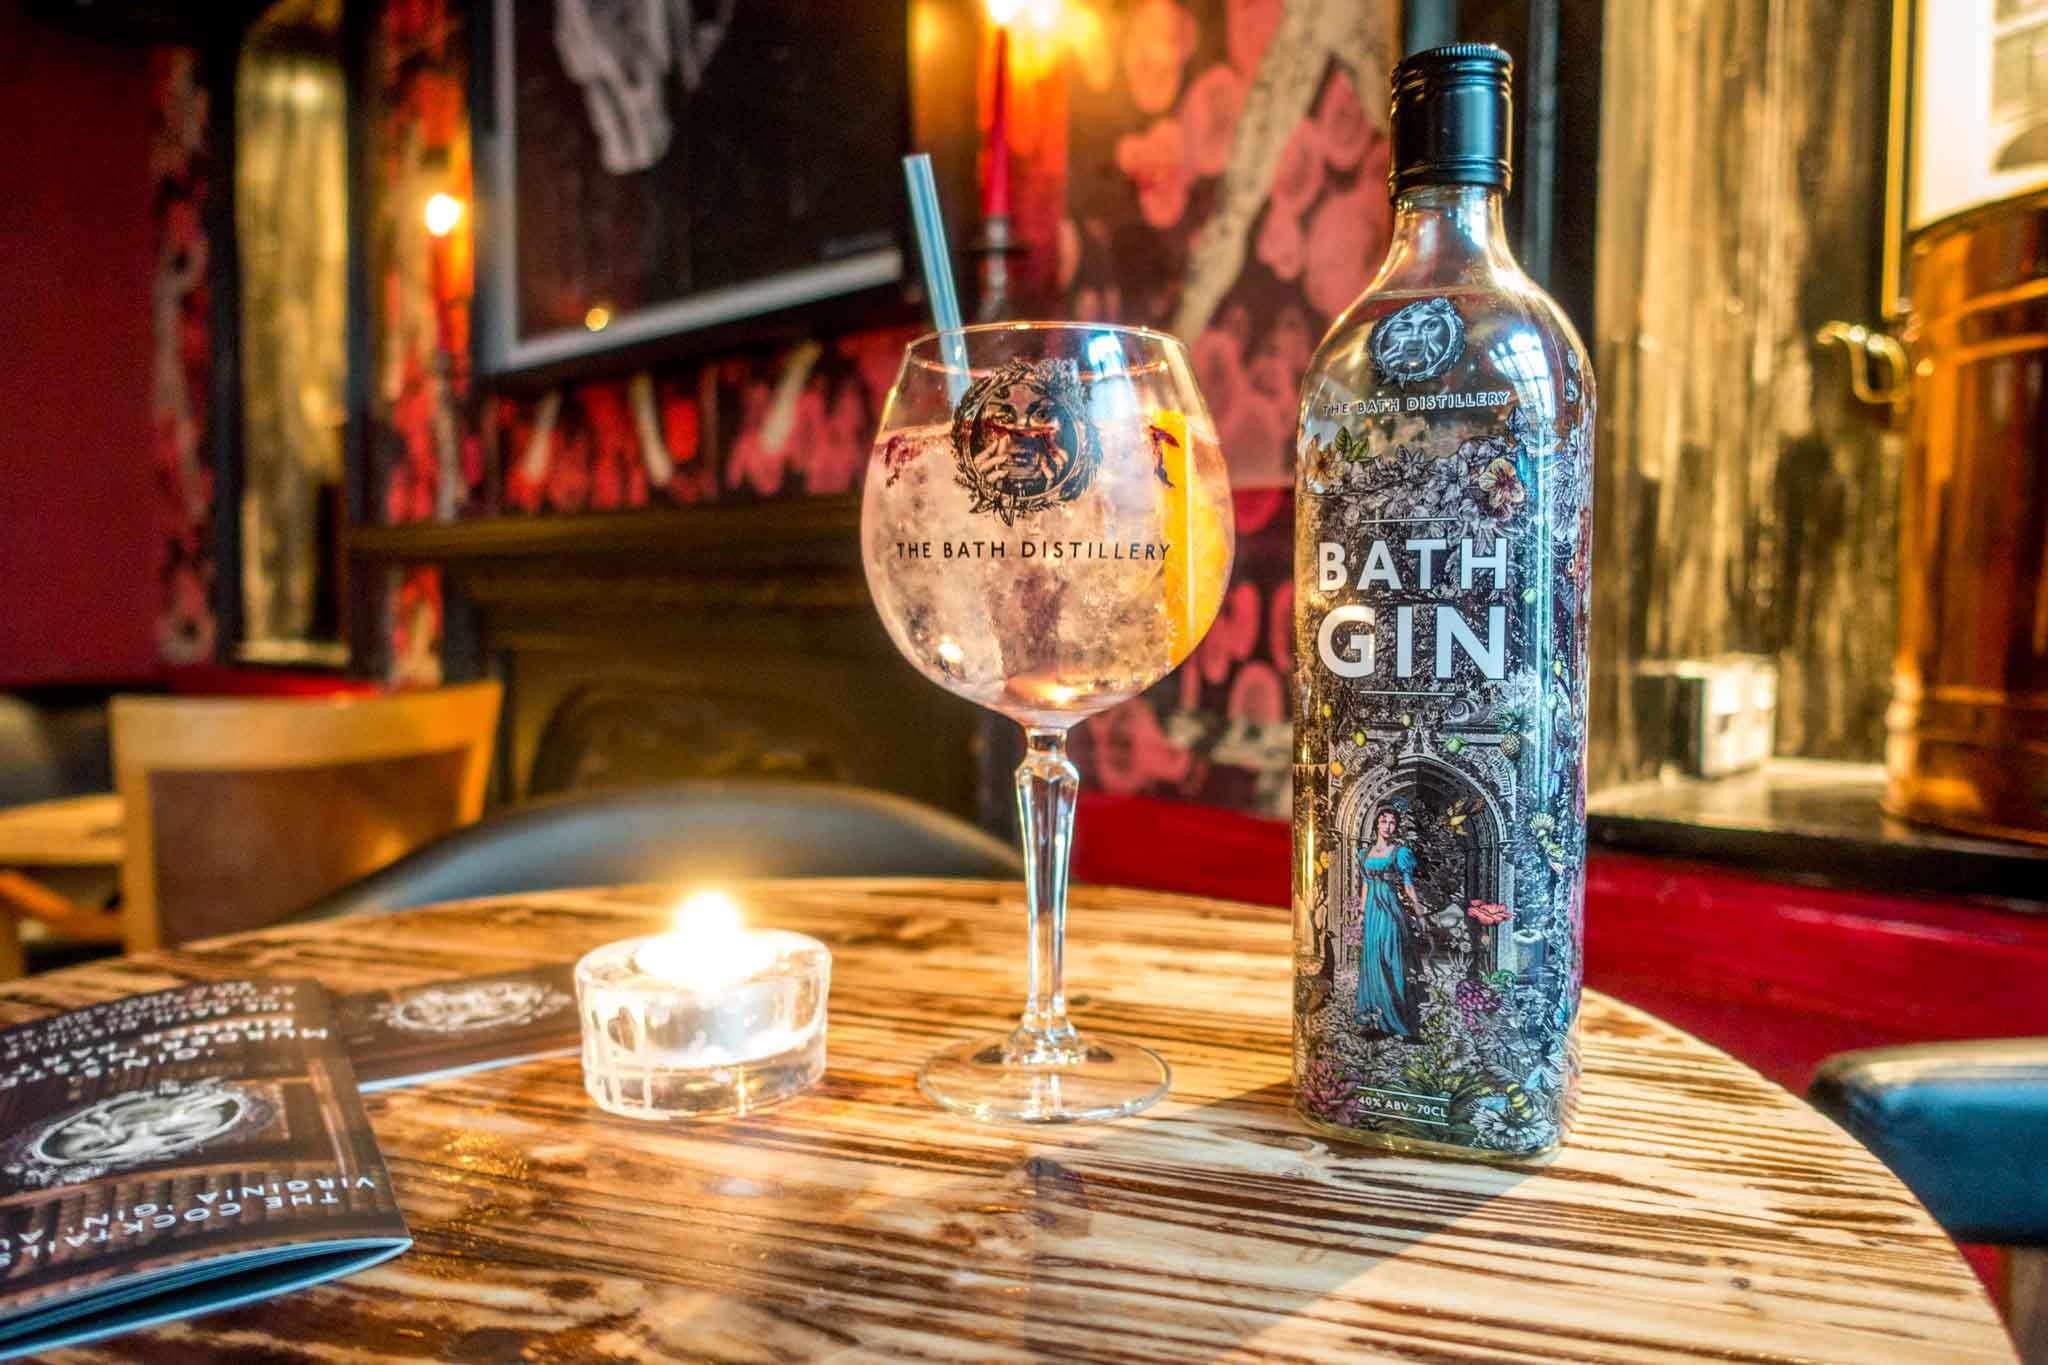 Sampling gins from the Bath Gin Company.